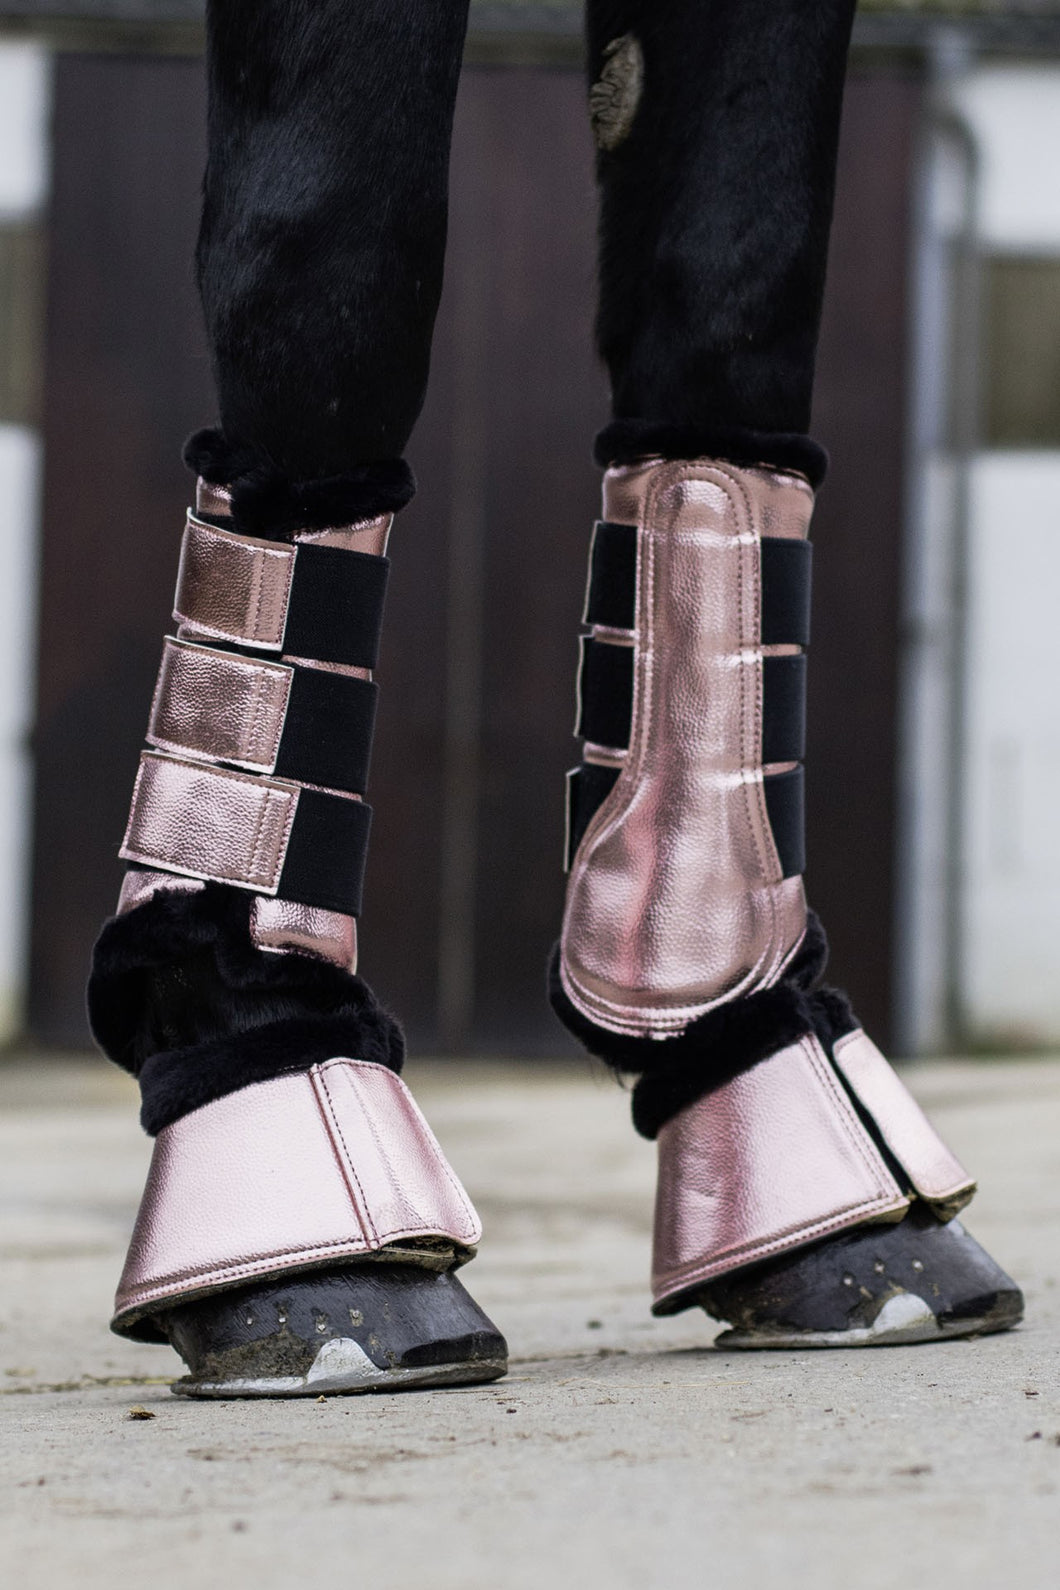 hkm metallic rose gold protection boots